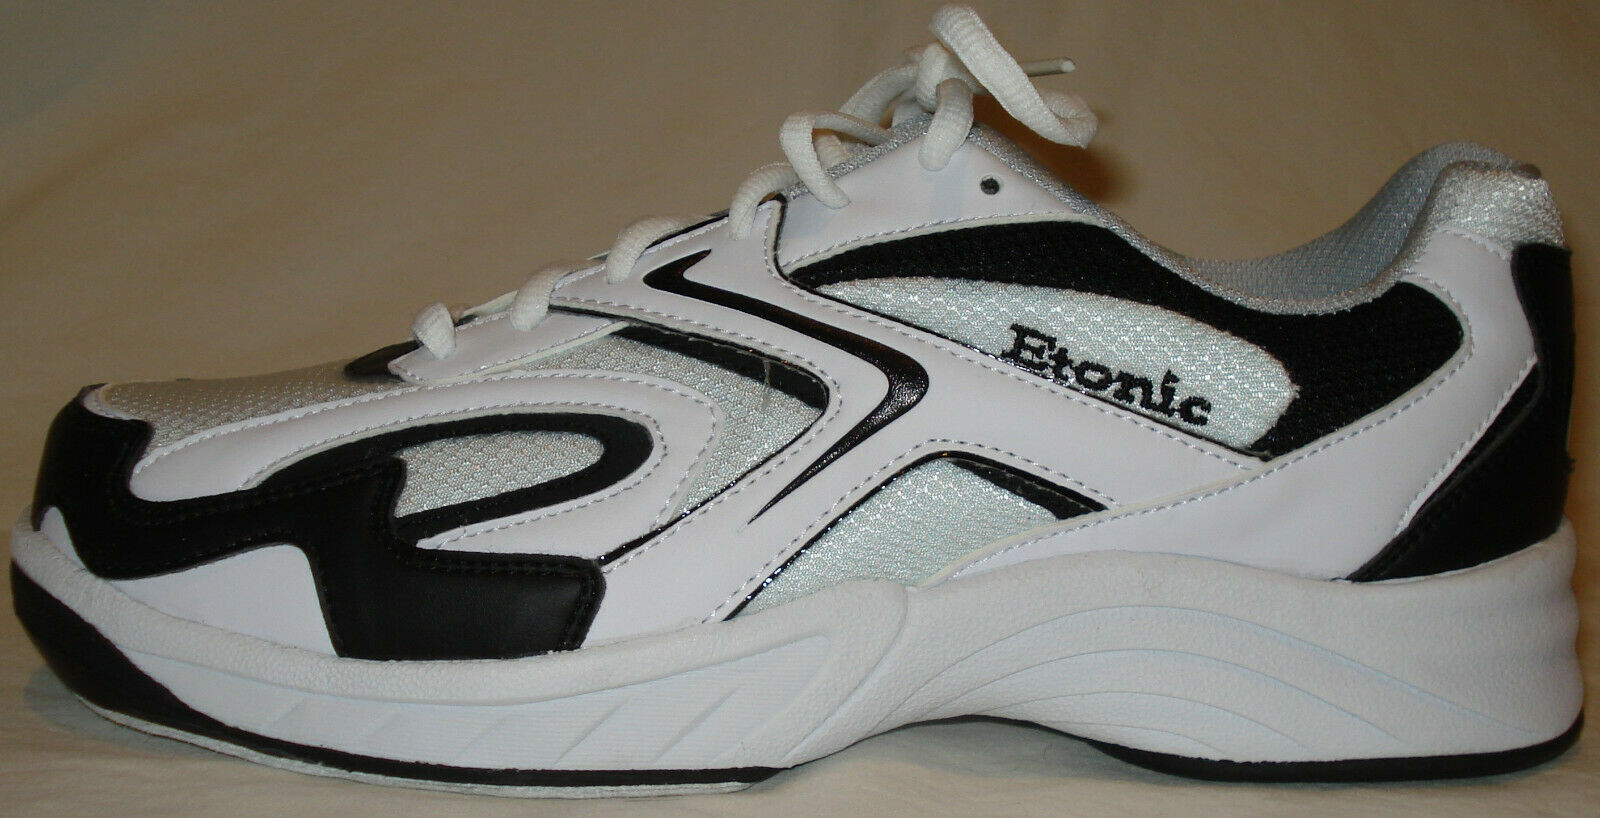 blaster bowling shoes